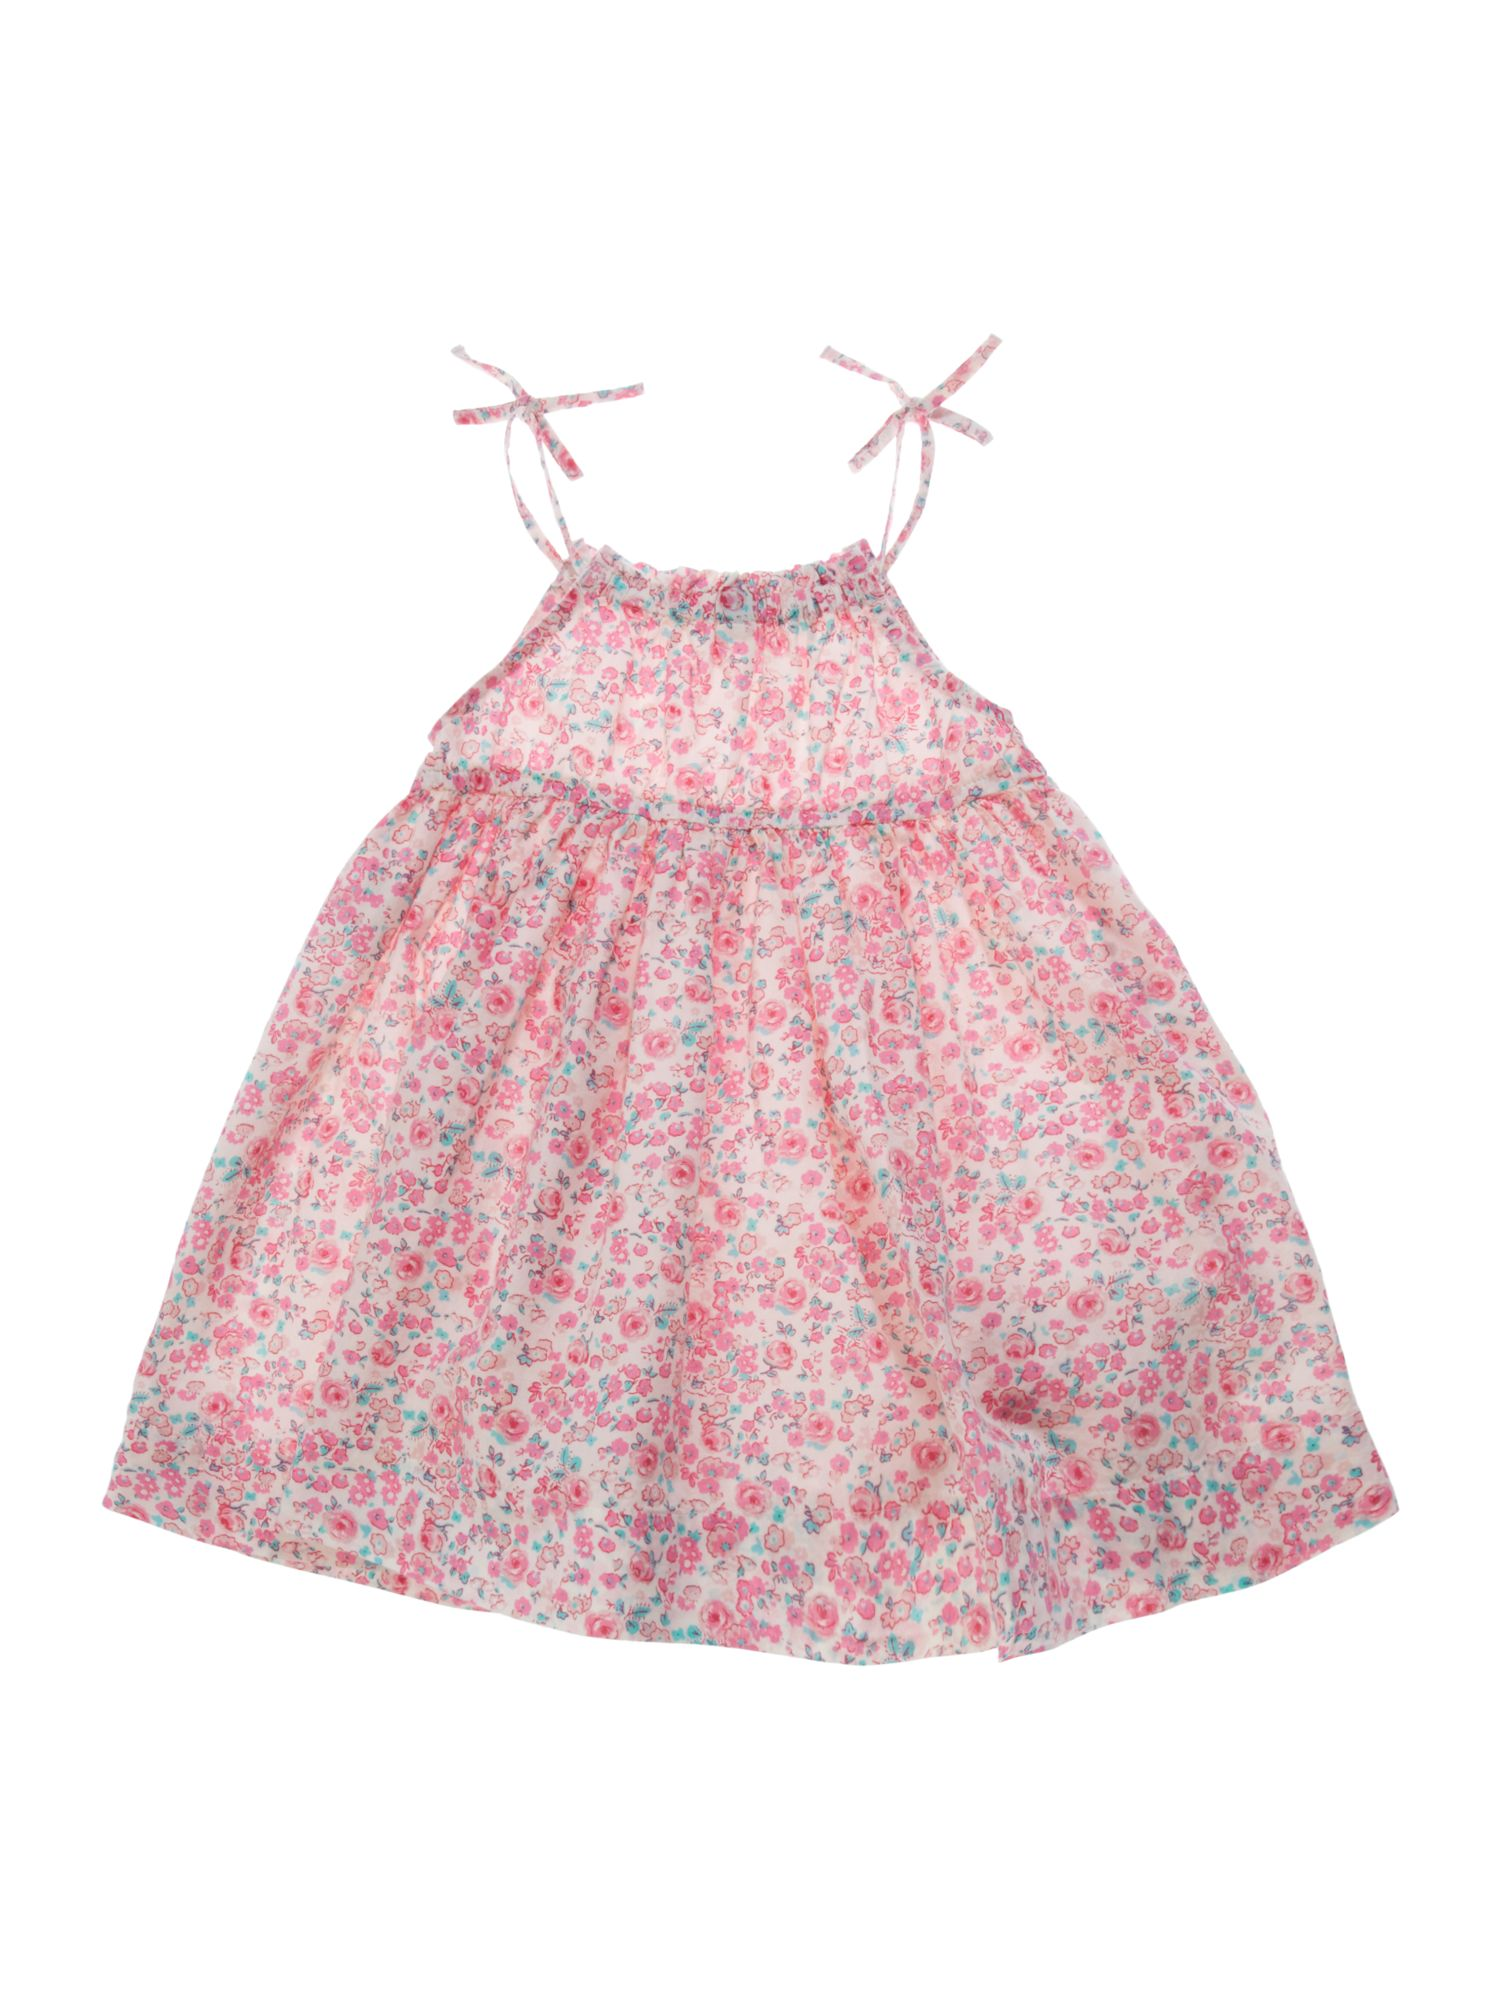 Girls ditsy floral dress